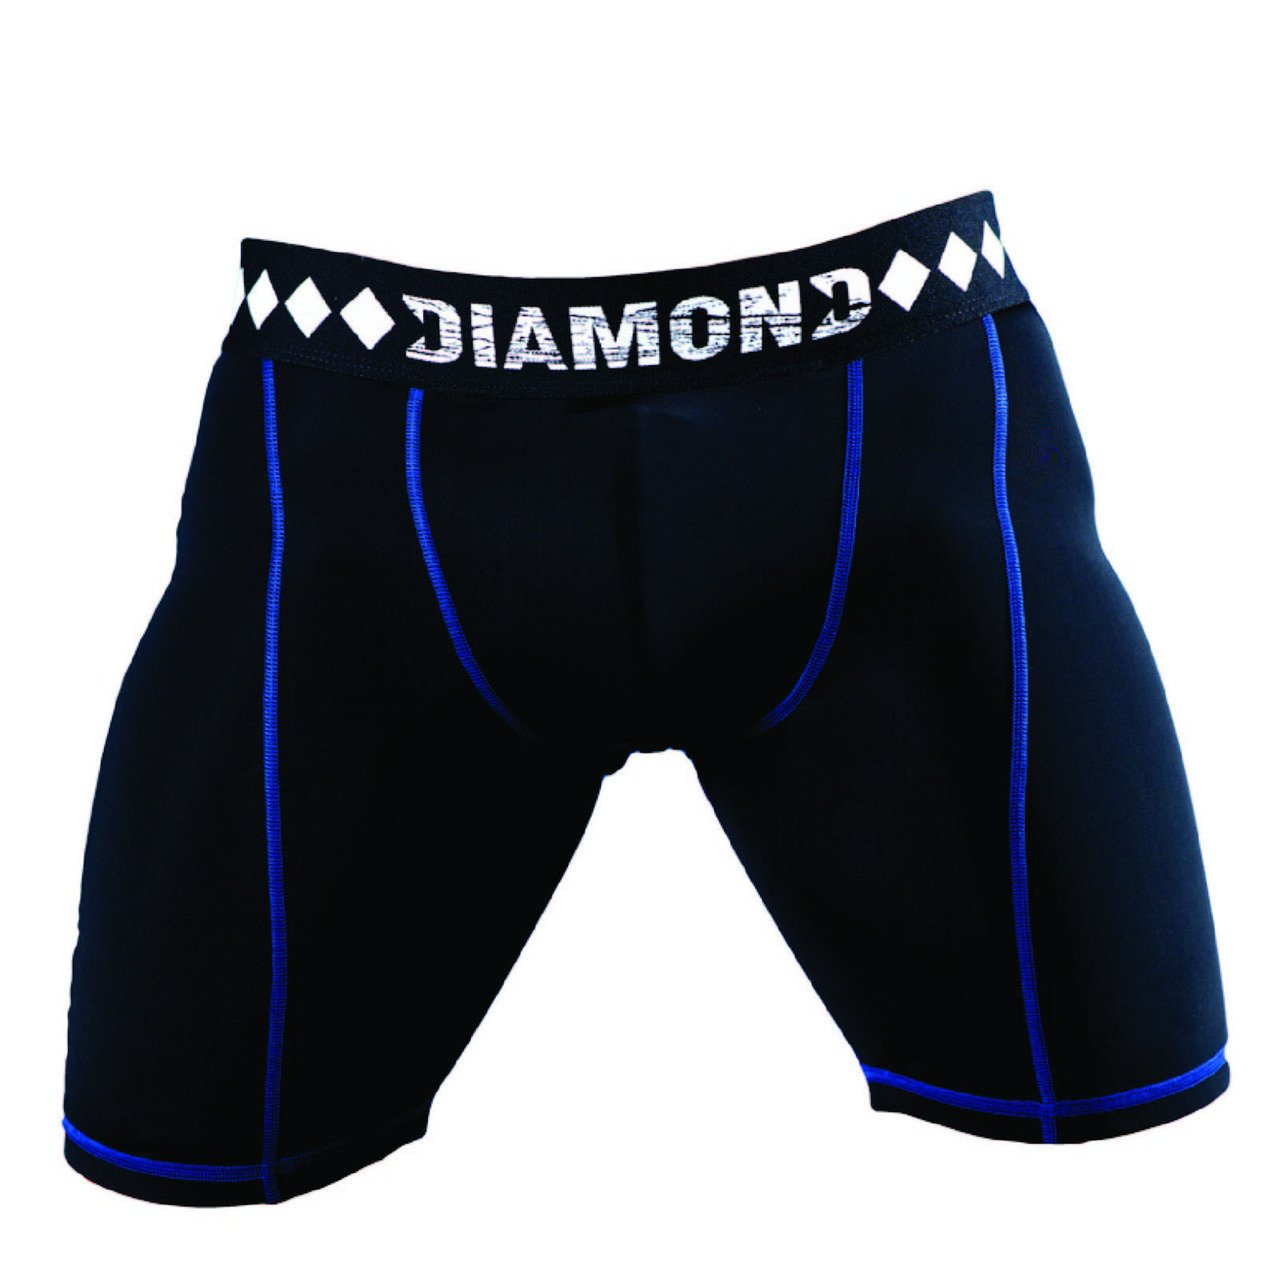 Diamond MMA Compression Shorts & Cup